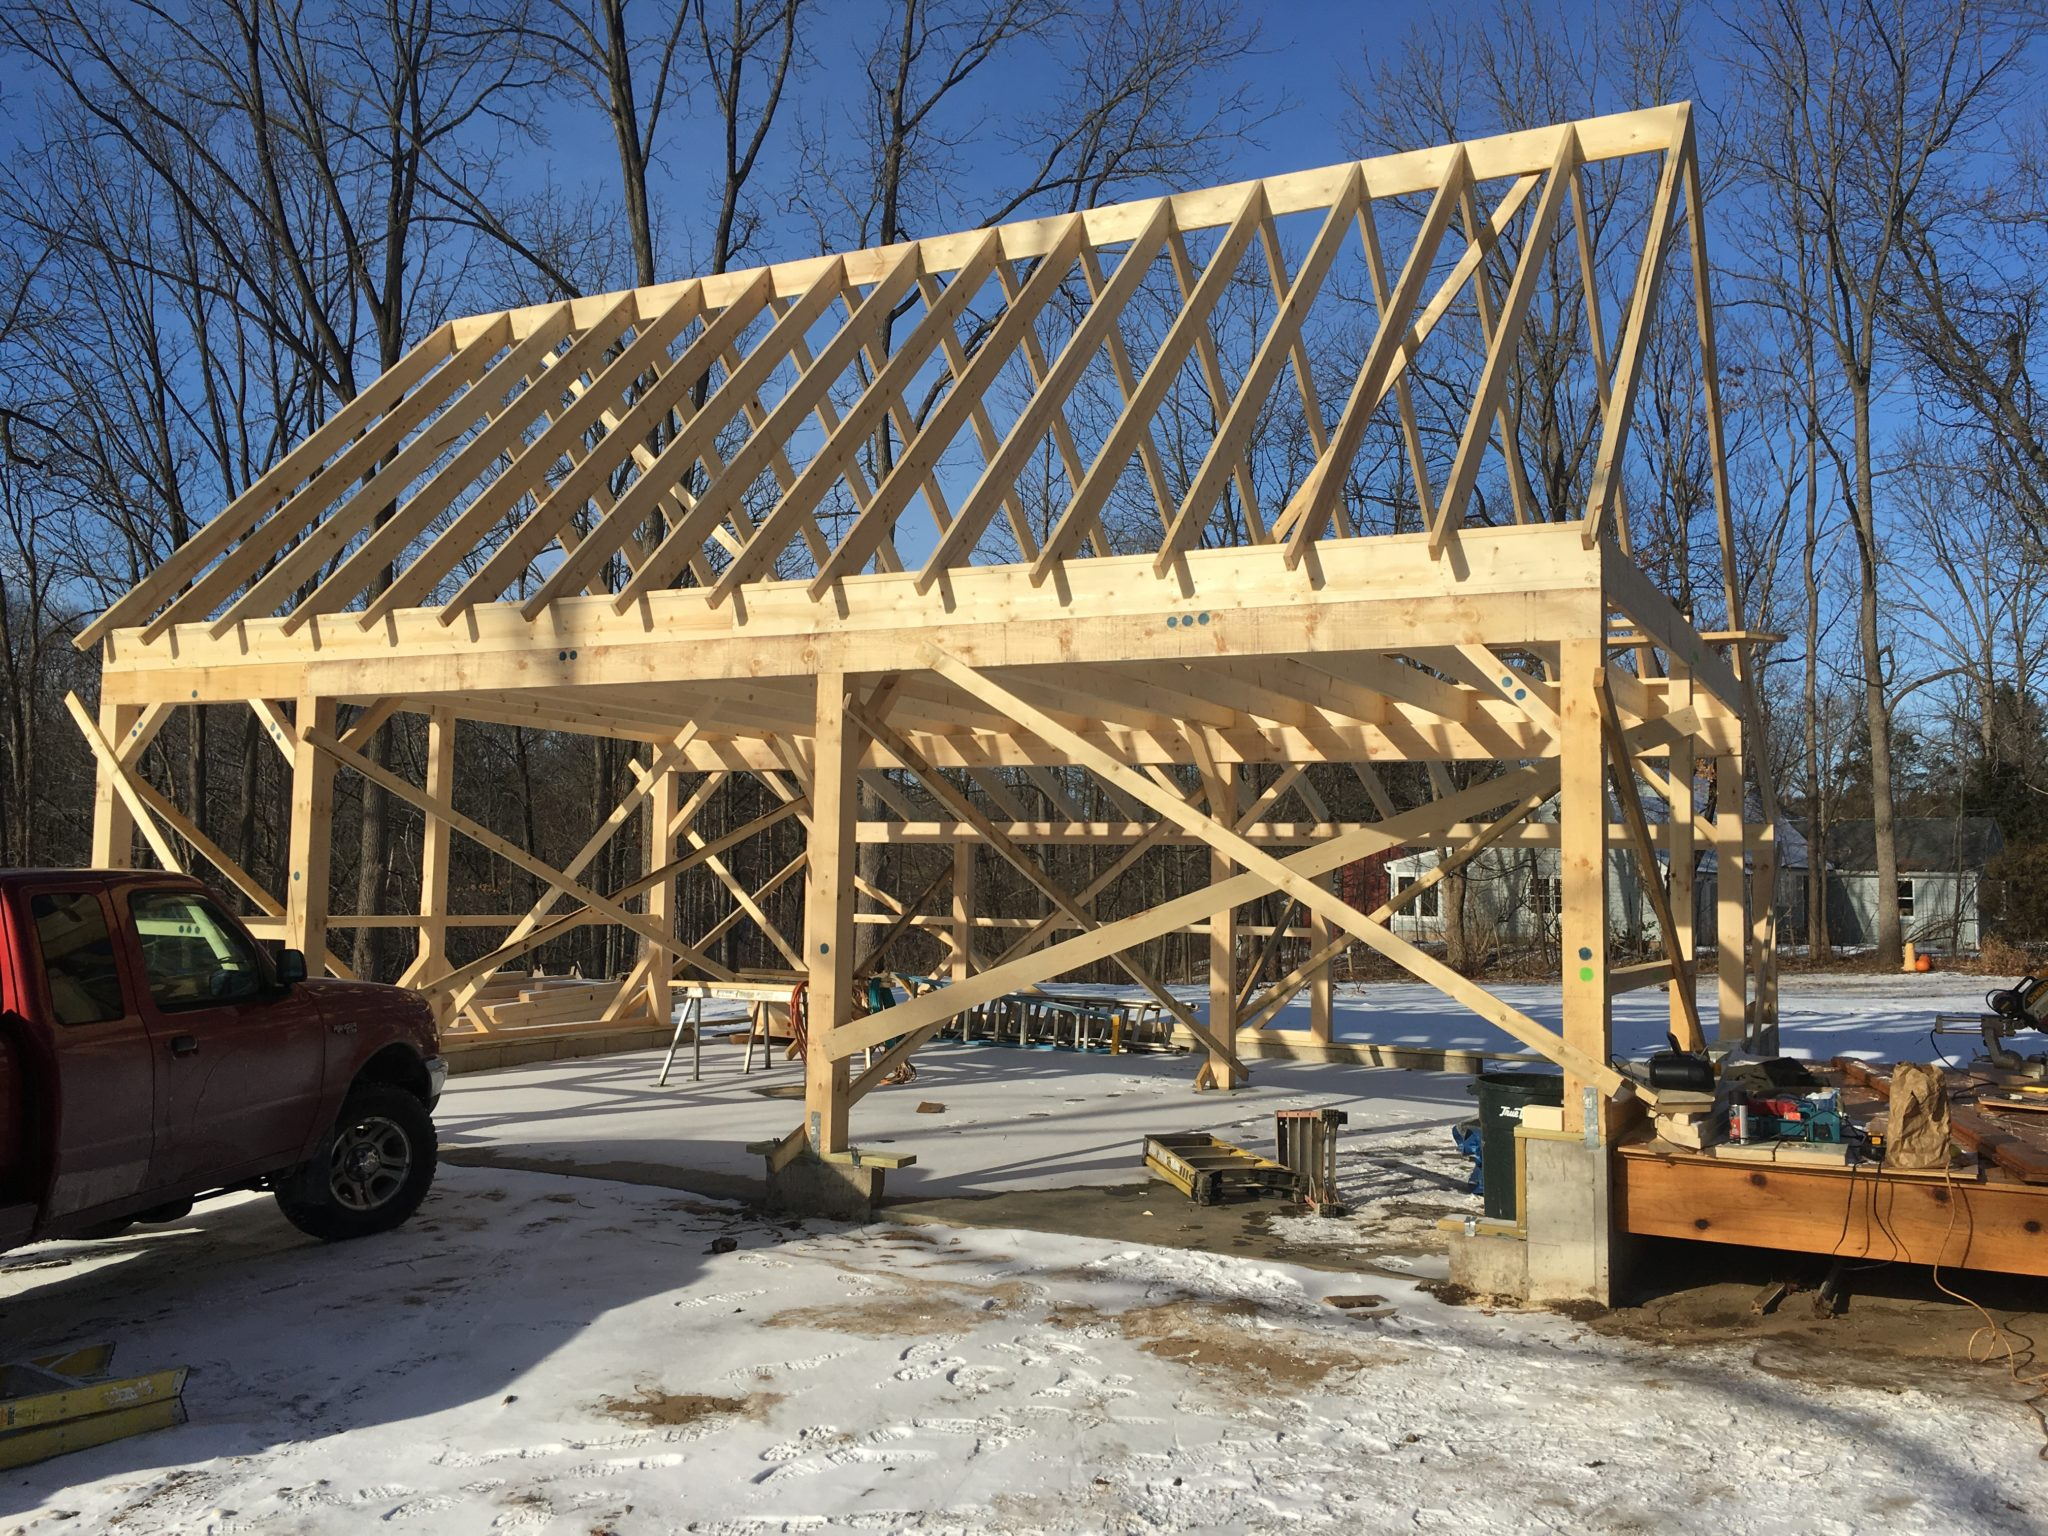 Country Carpenters In Hebron CT Is Supplying The Garage They Have Some Very Nice Post And Beam Style Structures Home Hearth Always Works To Provide